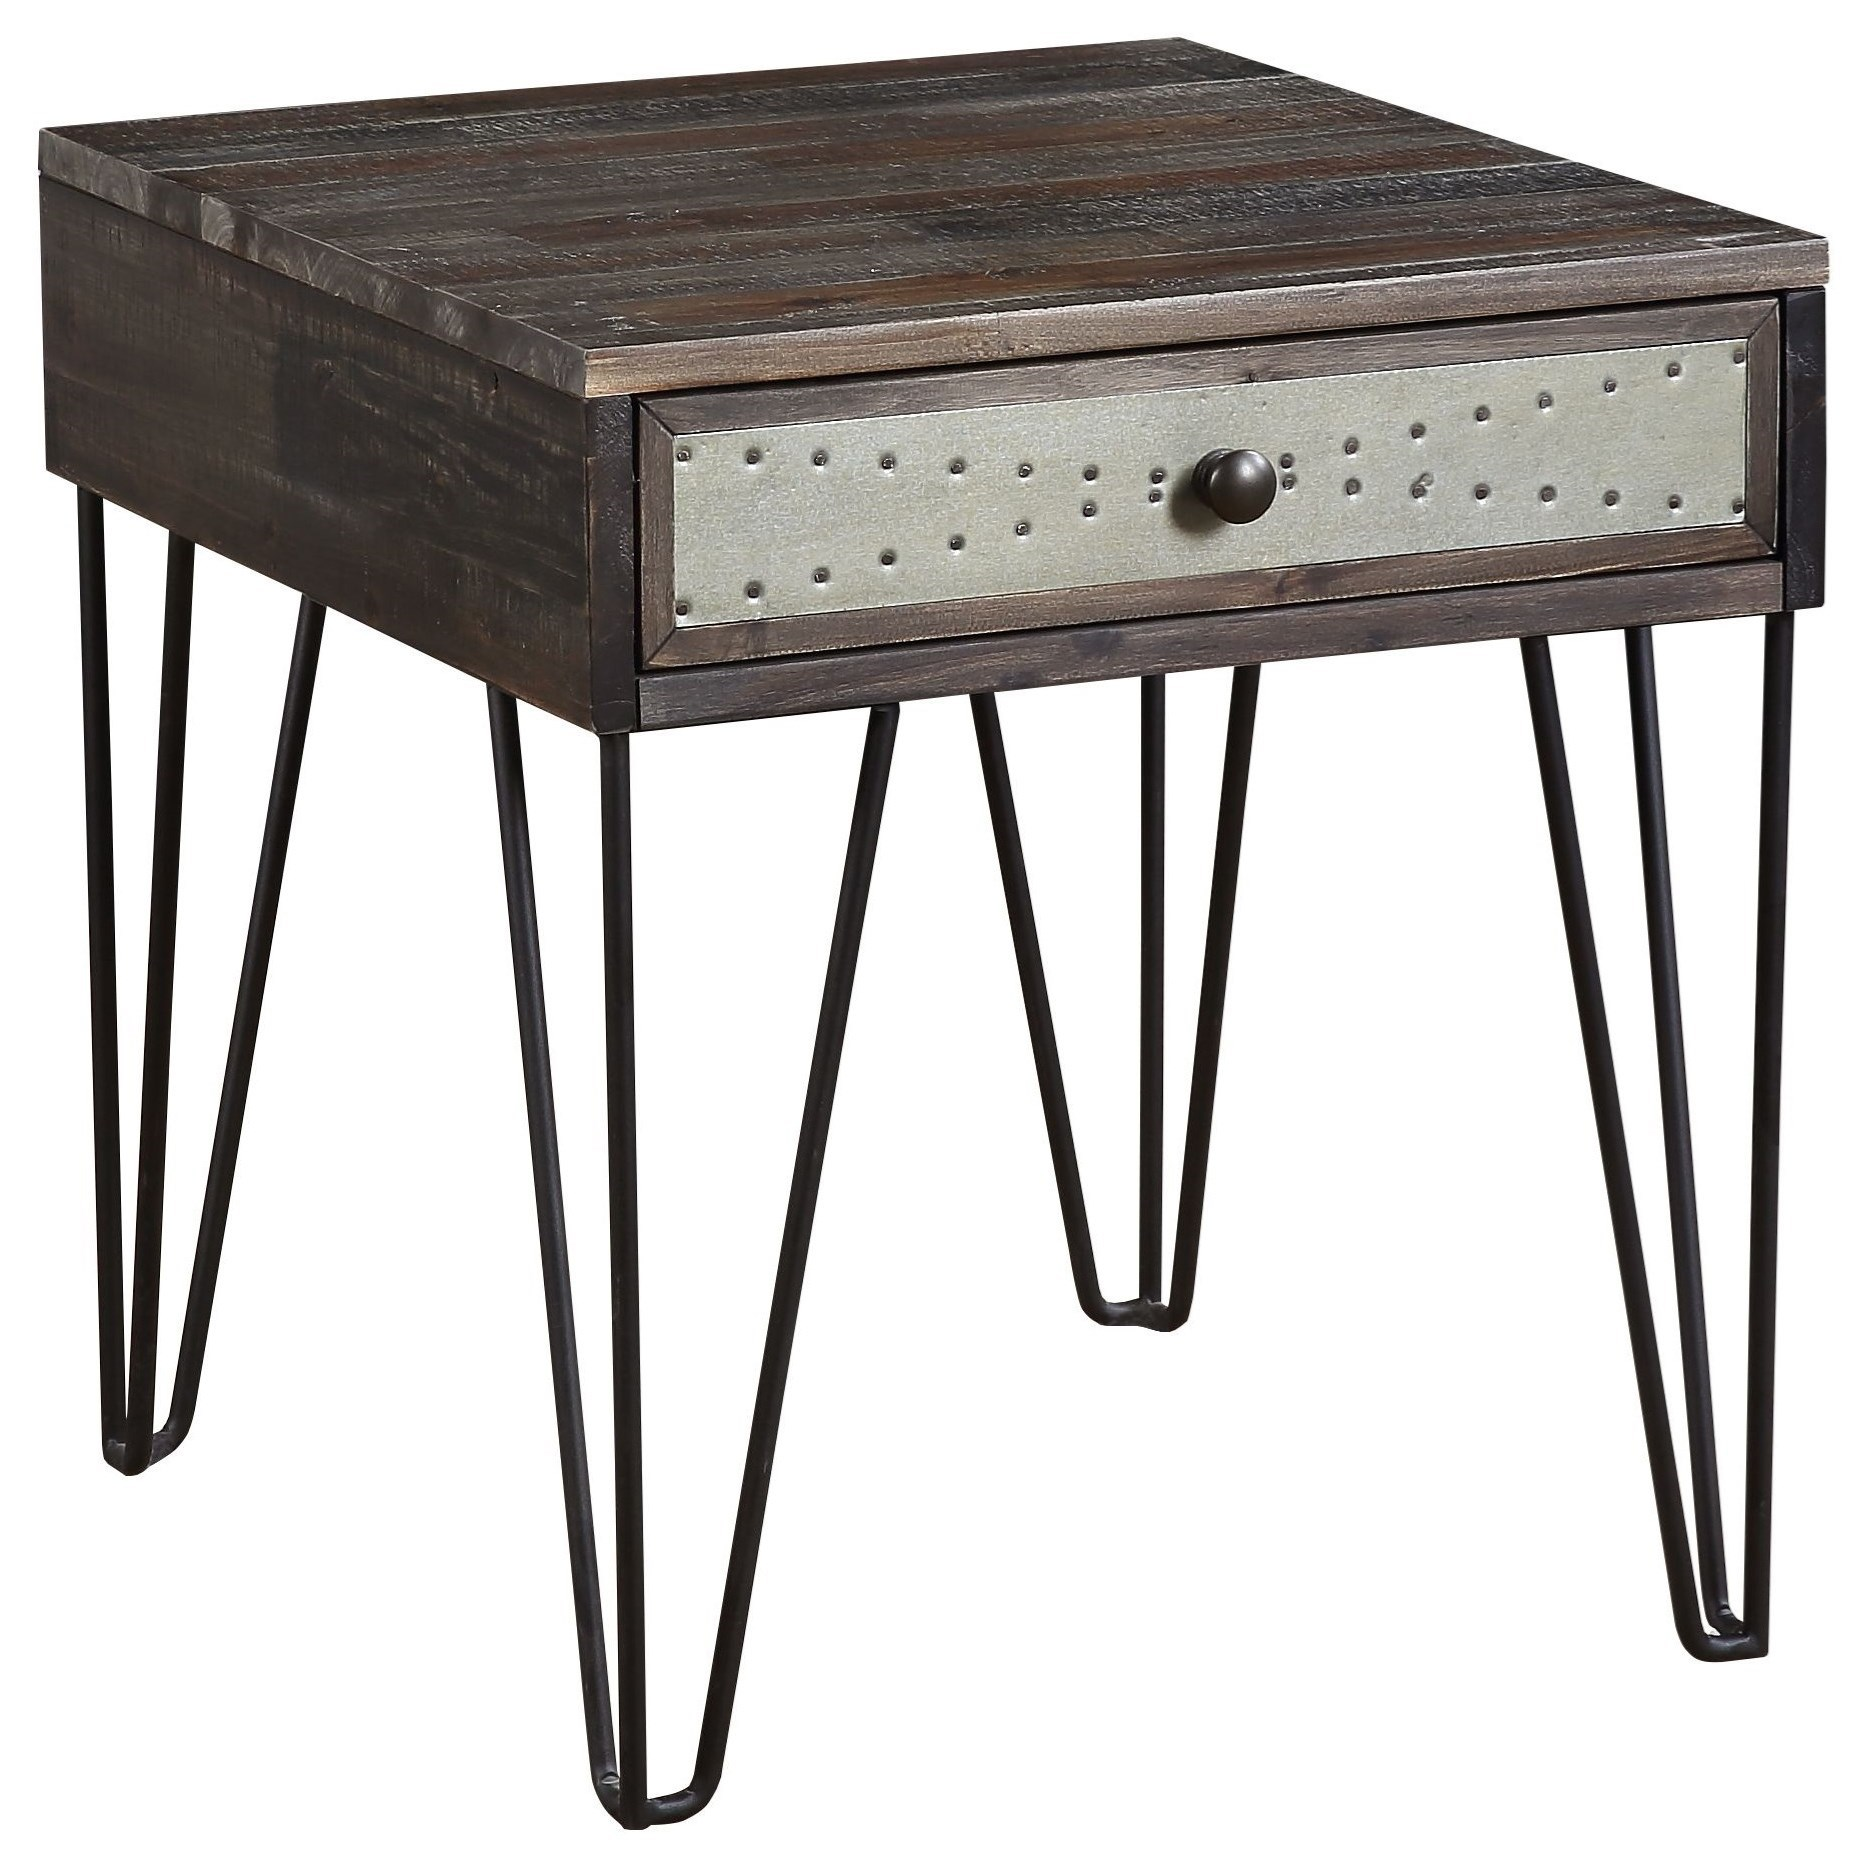 Aspen Court Vintage 1-Drawer End Table by Coast to Coast Imports at Baer's Furniture